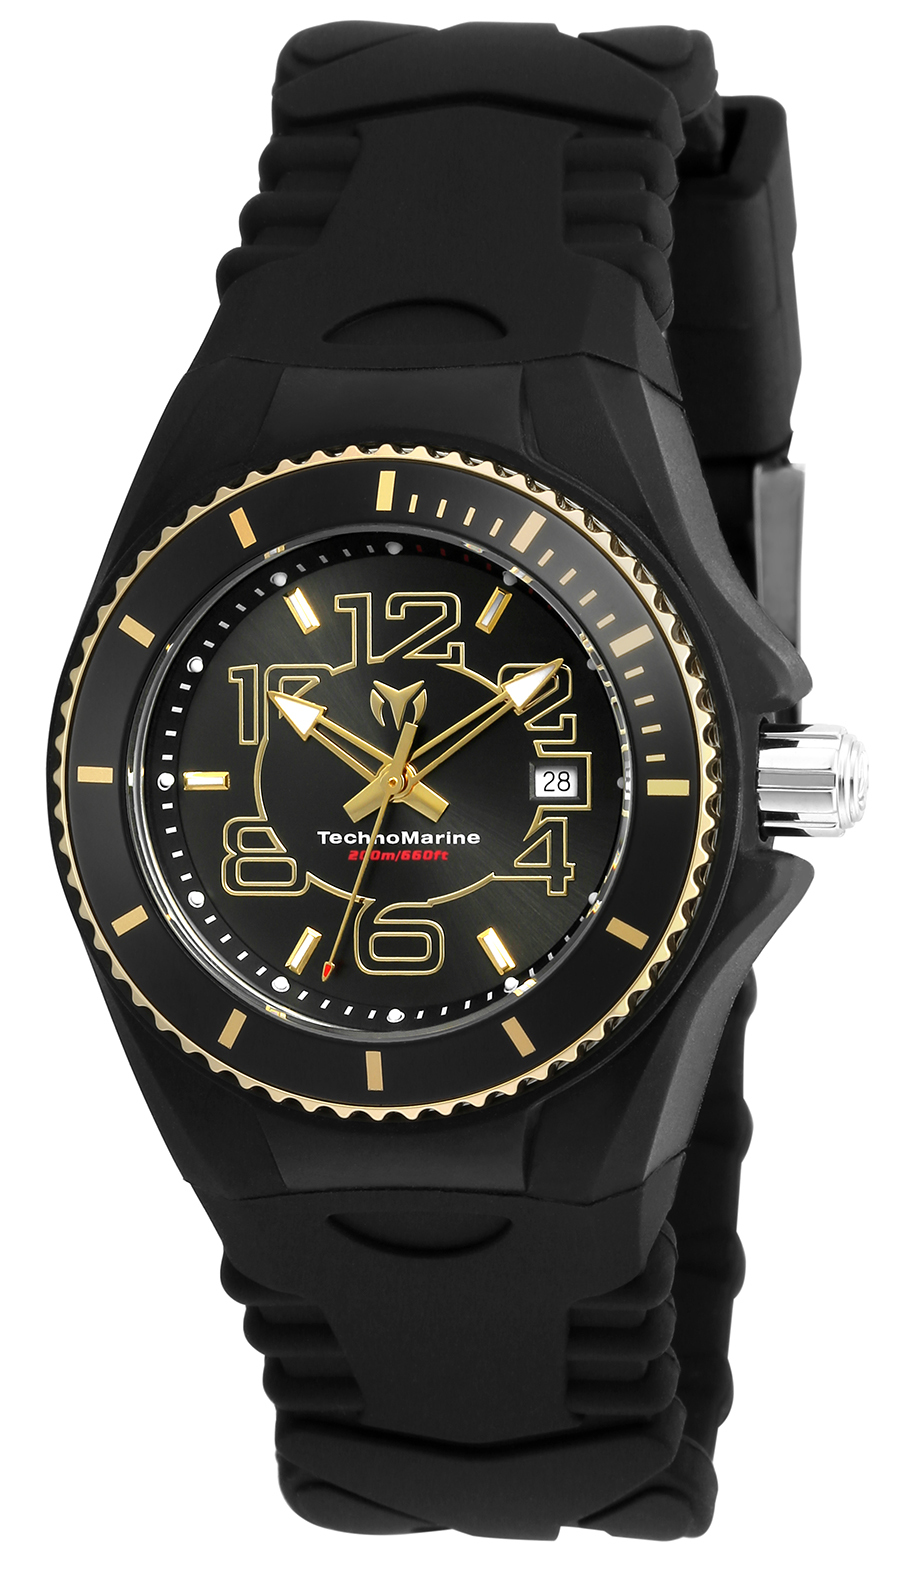 Technomarine Cruise Jellyfish Damklocka TM-115131 Svart/Gummi Ø34 mm - Technomarine